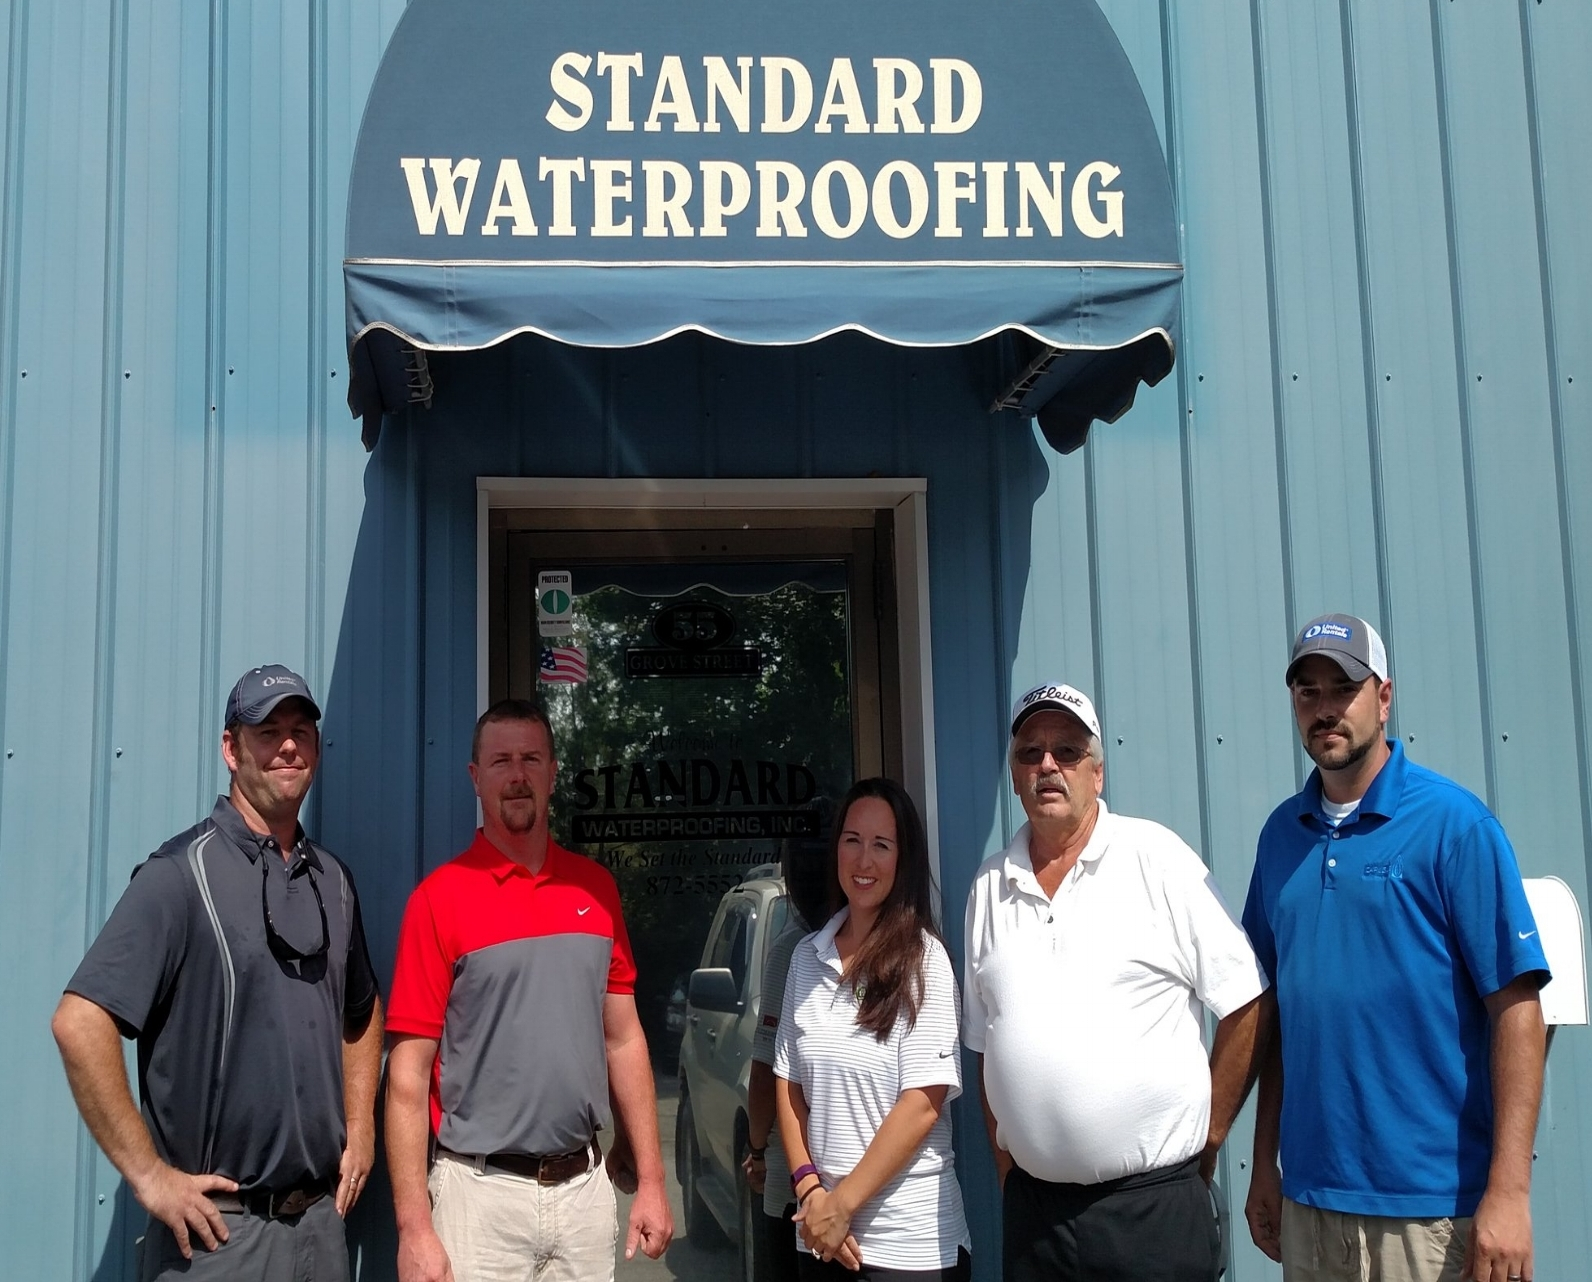 Standard Waterproofing, Inc. lead staff:  left to right  Shawn brooks, Asst. Project manager;   Chad bailey,  senior project manager;  theresa Thompson,  President;  leon van horn,  estimator;  Kevin Nutting,  Southern Maine Project Manager .